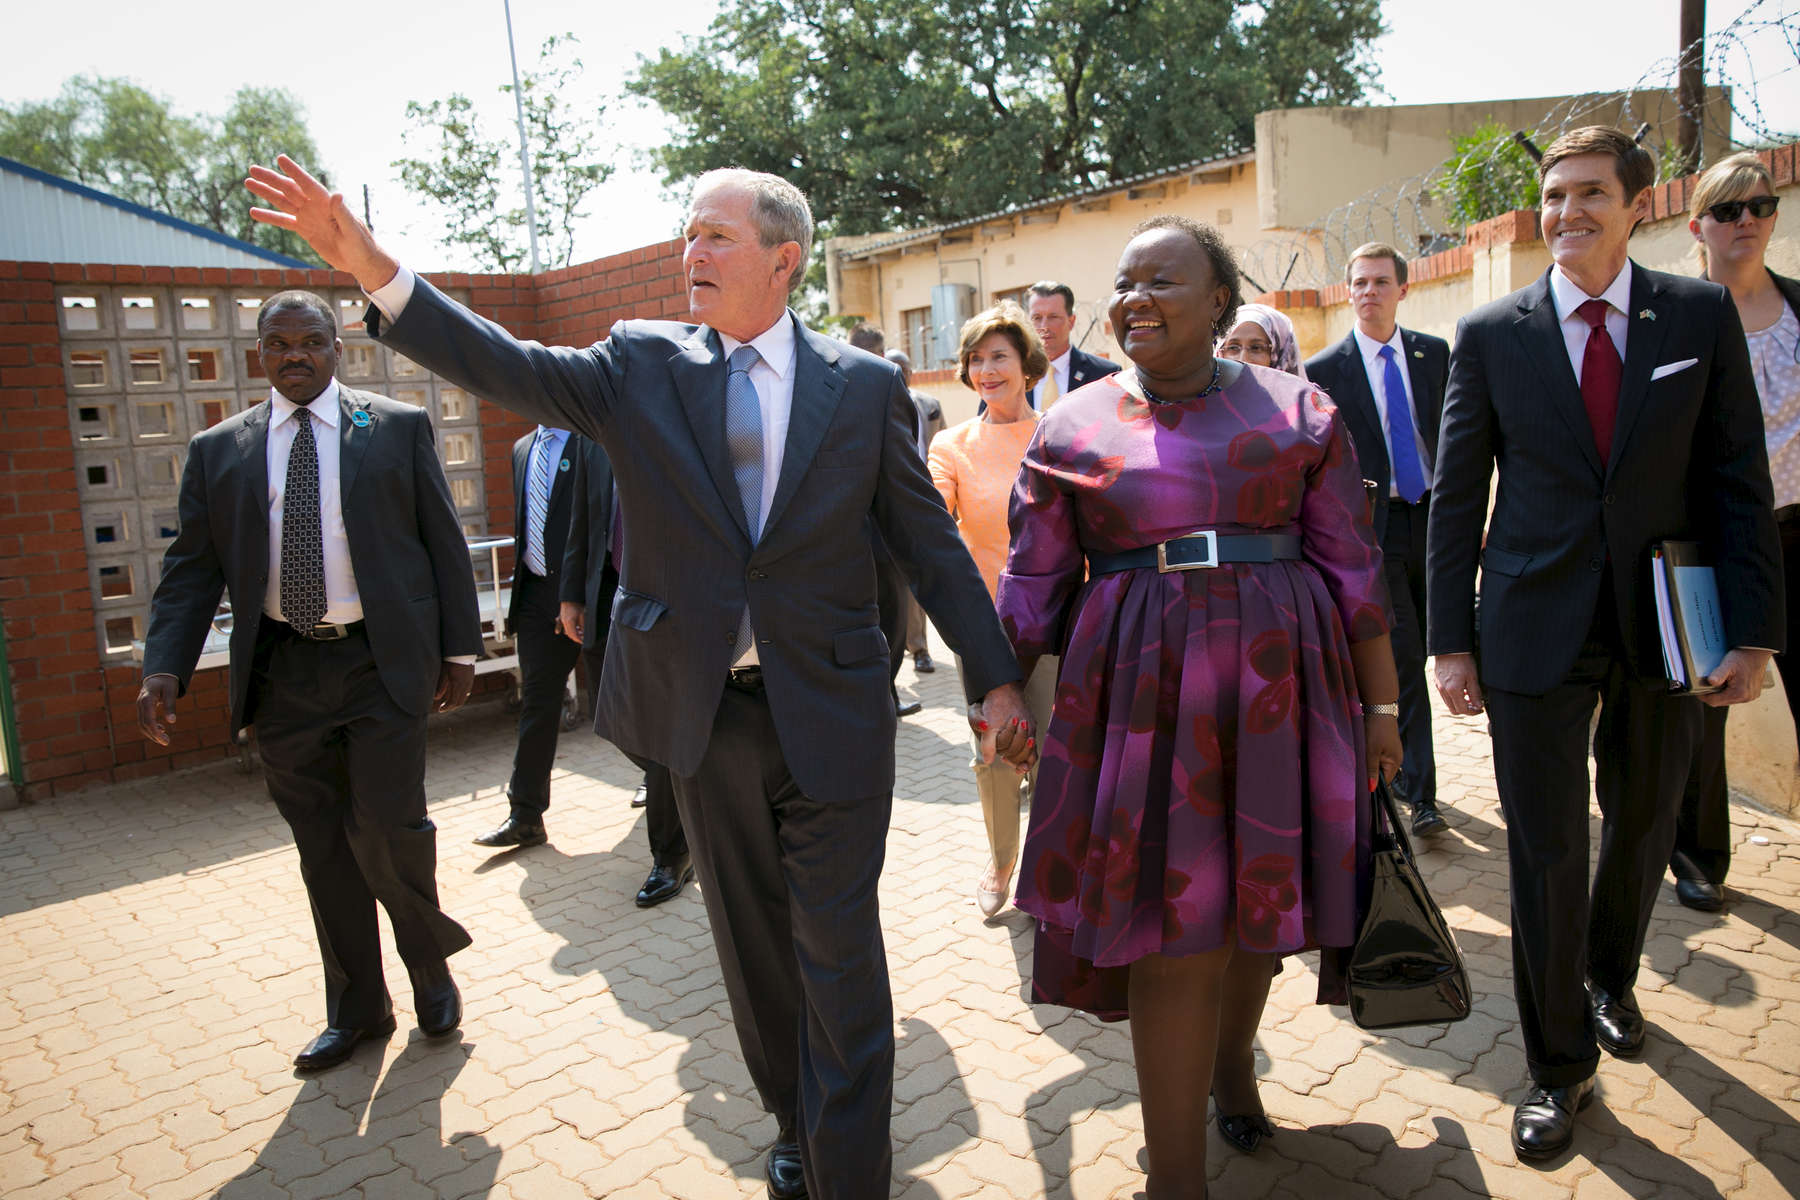 President and Mrs. Bush in Africa on April 4, 2017. Photo by Paul Morse